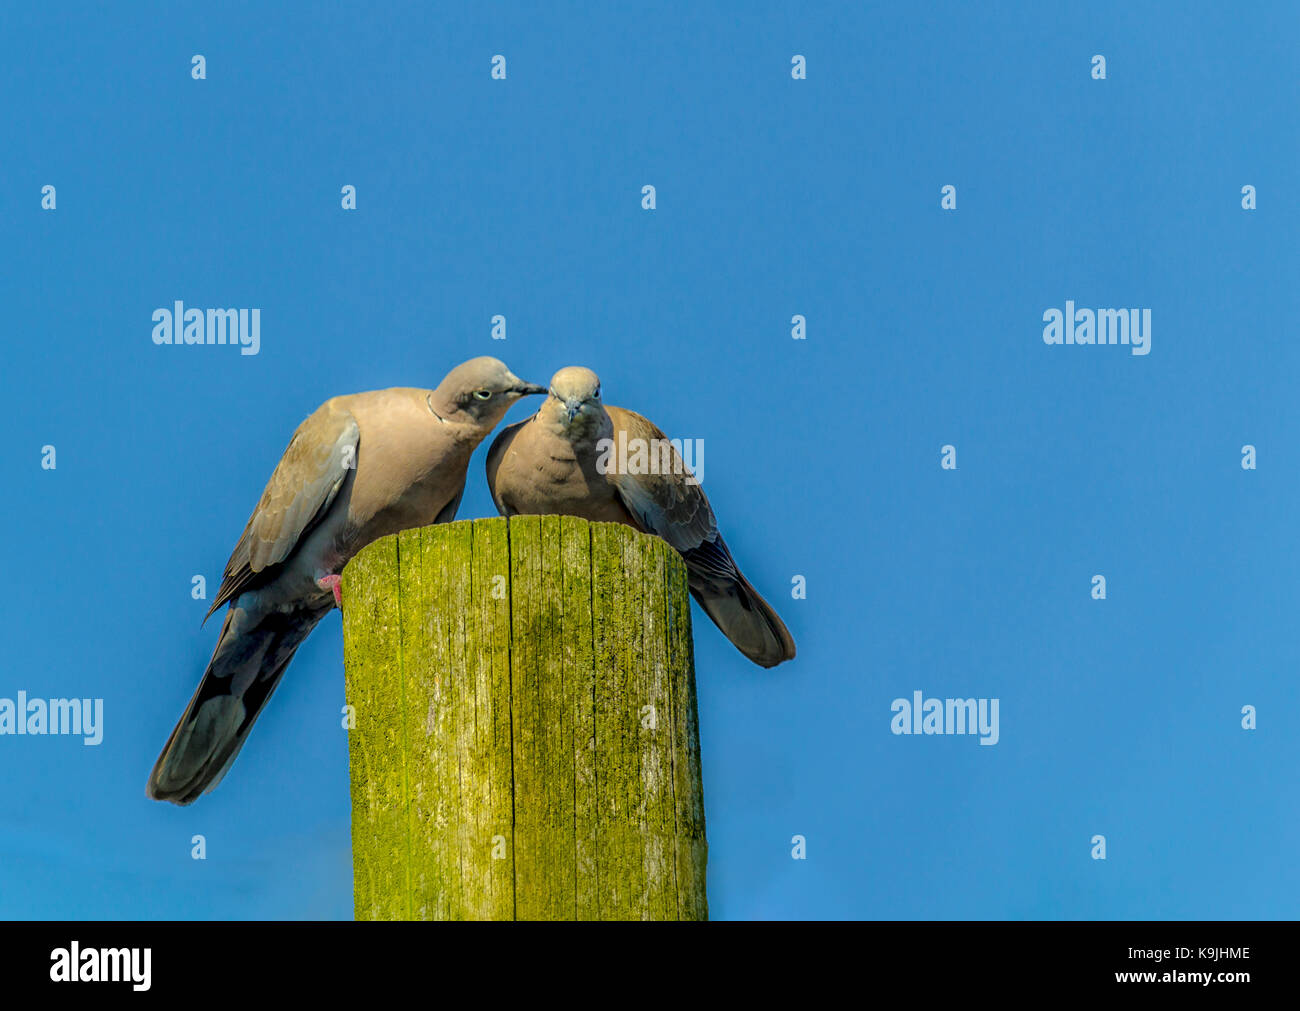 Ring doves on a pole., loving, together. - Stock Image